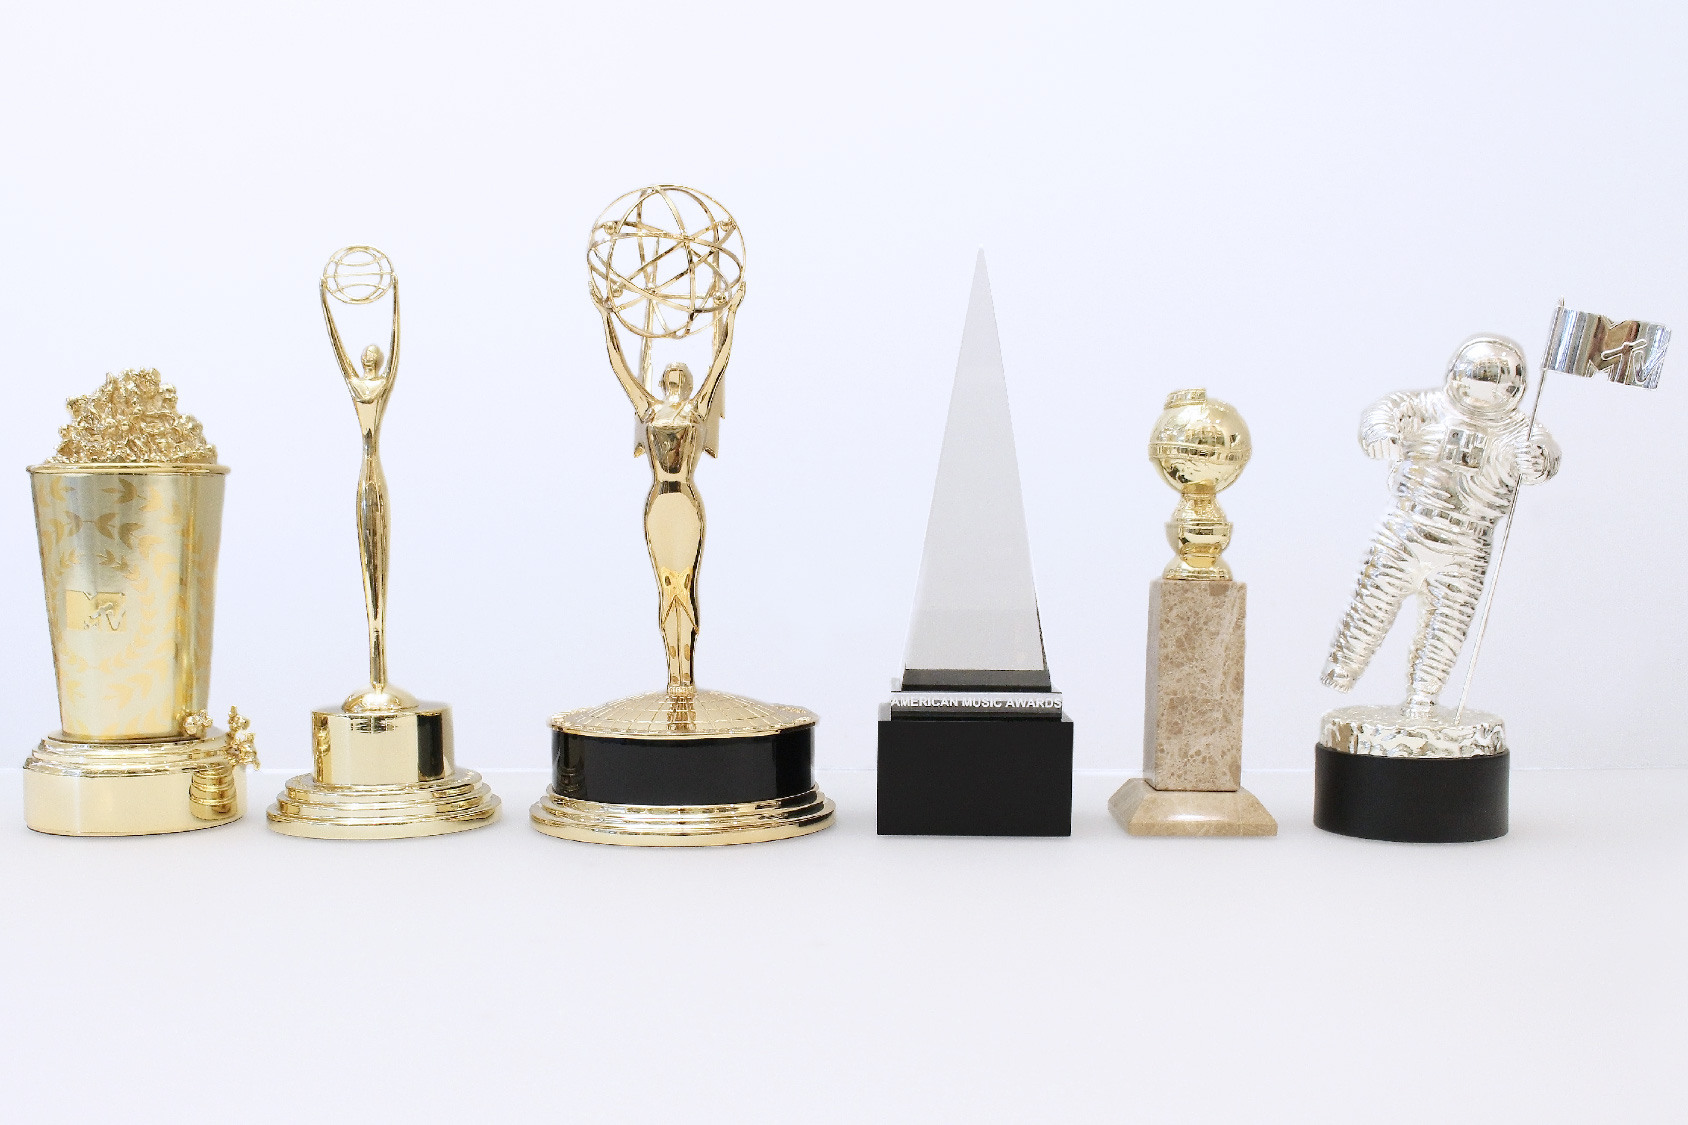 Six famous trophies on a white conference room table at the Society Awards New York offices